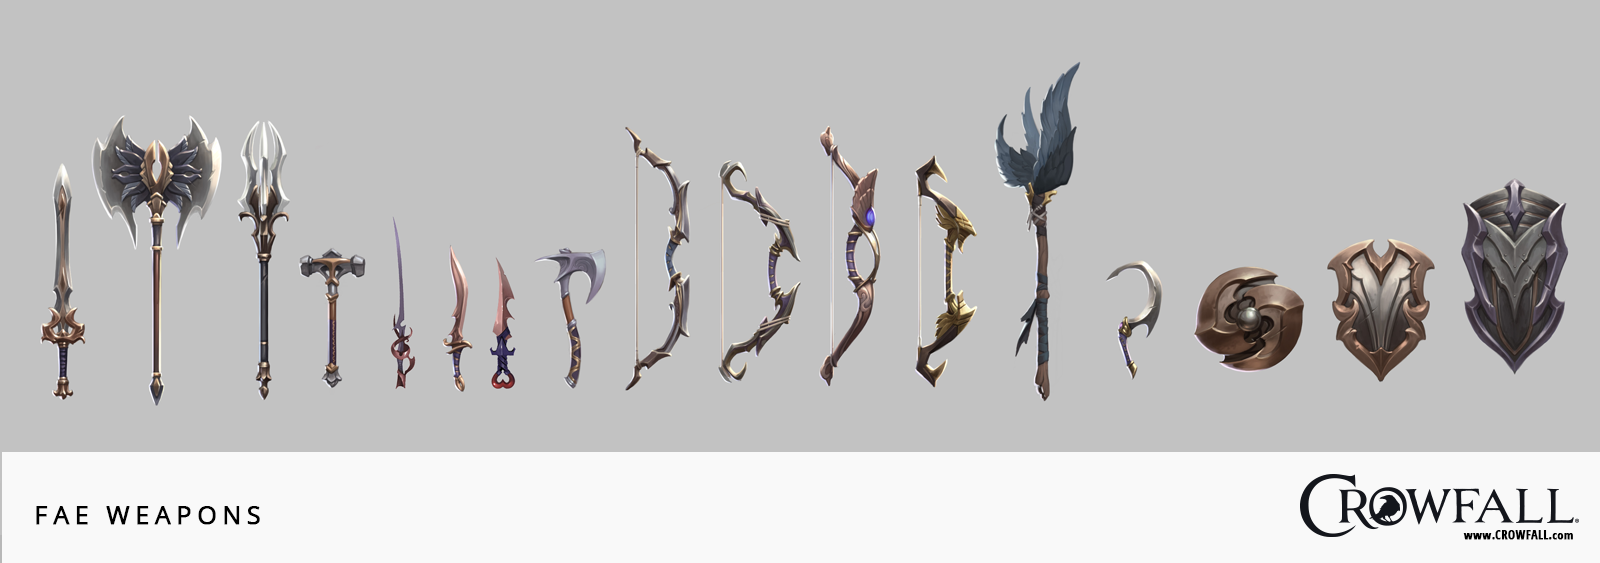 weapons fae